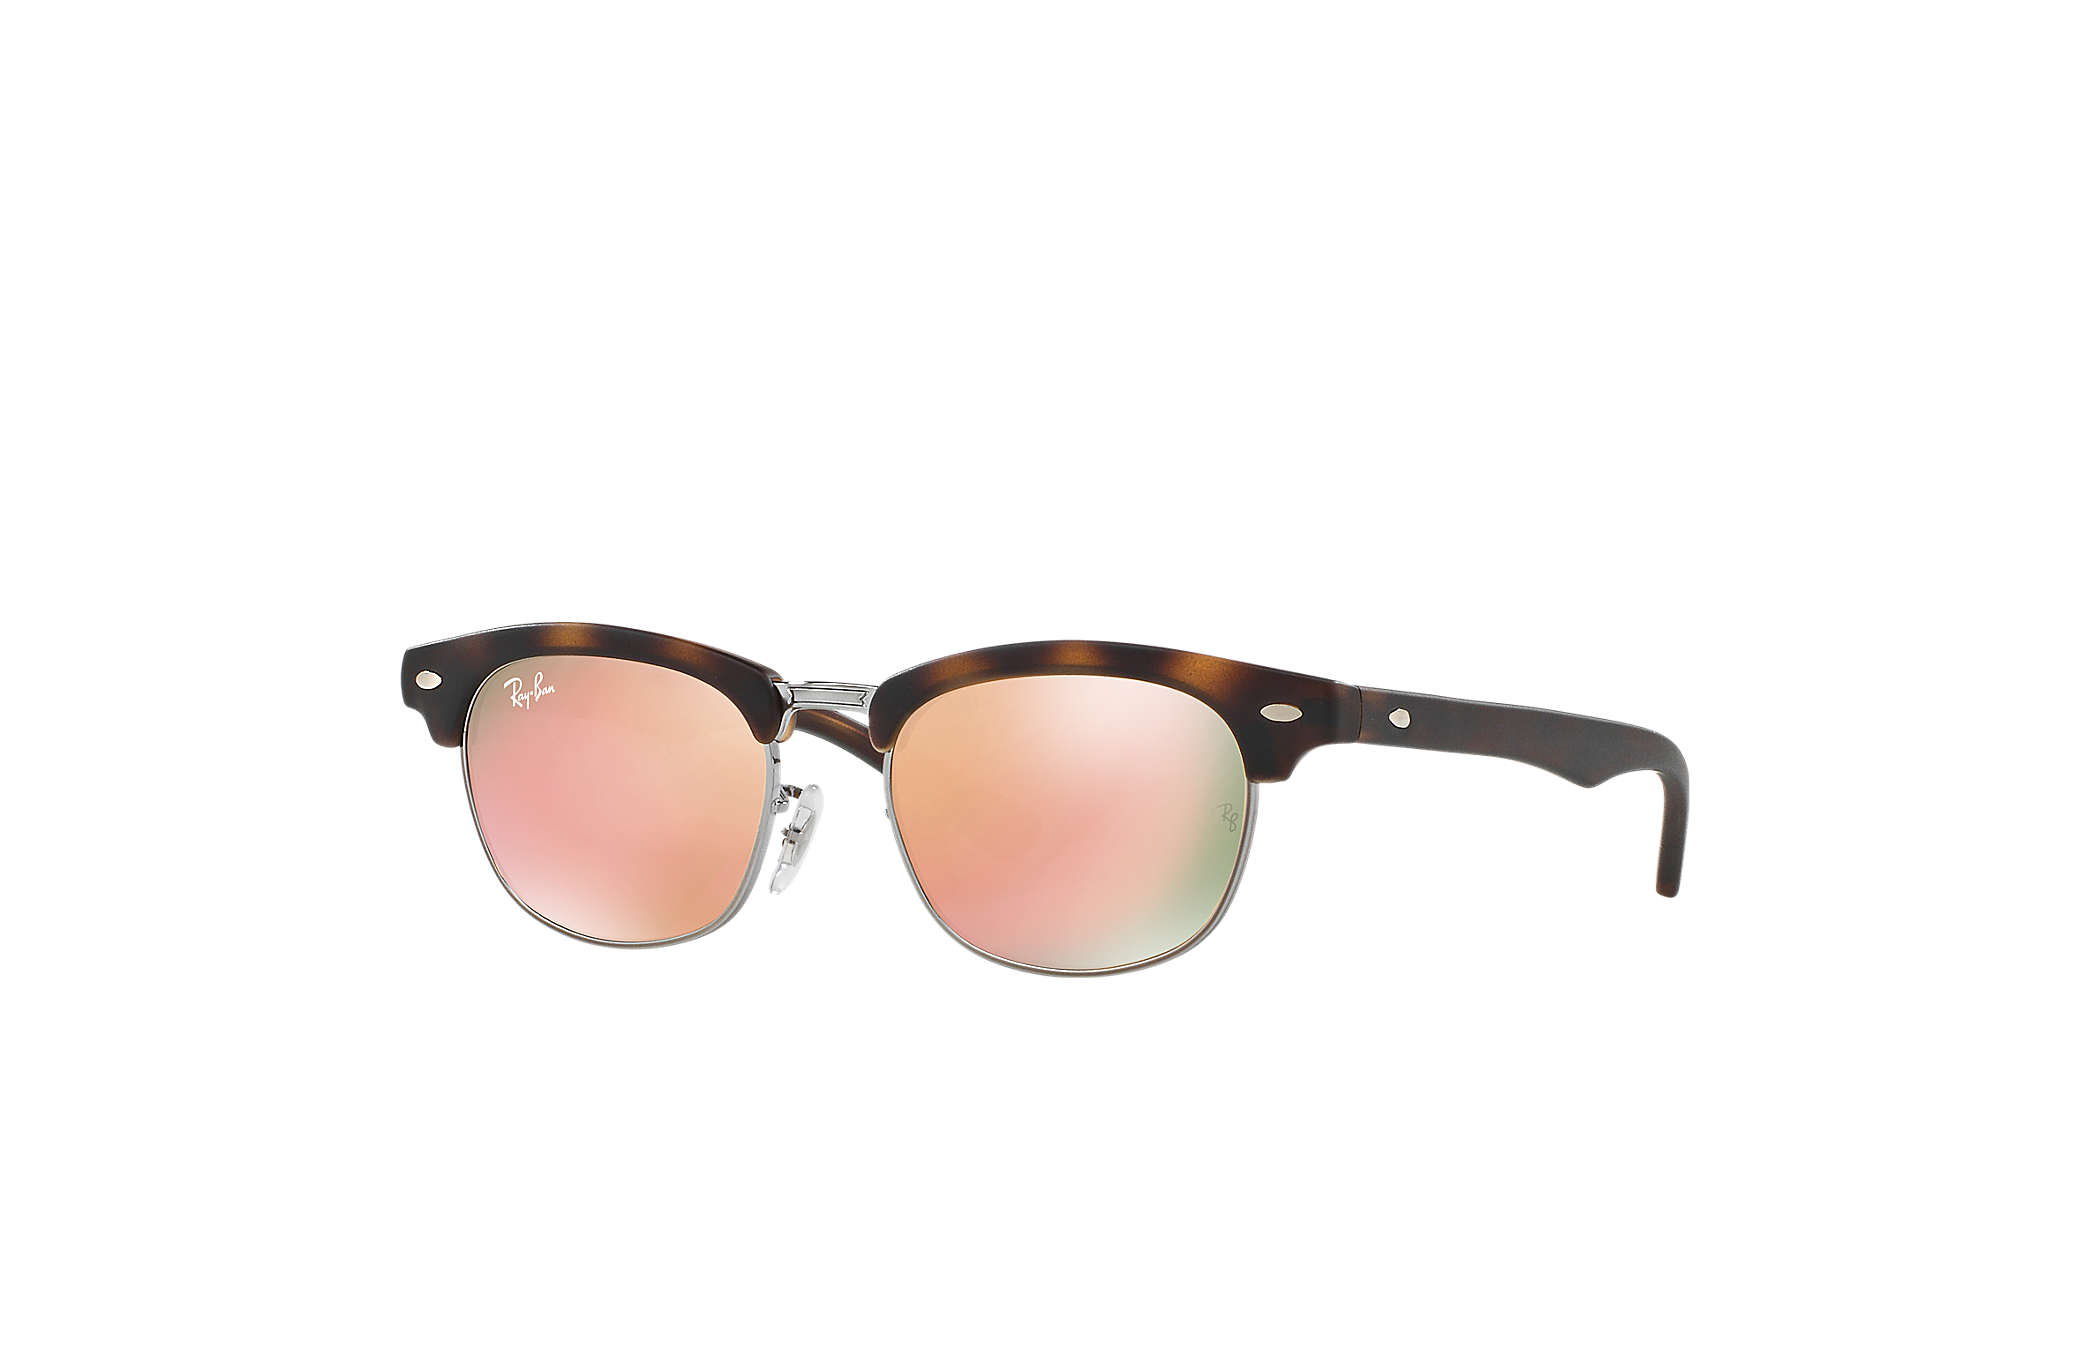 8568a58eeaaa3 Ray-Ban Clubmaster Junior RB9050S Tortoise - Nylon - Copper Lenses ...